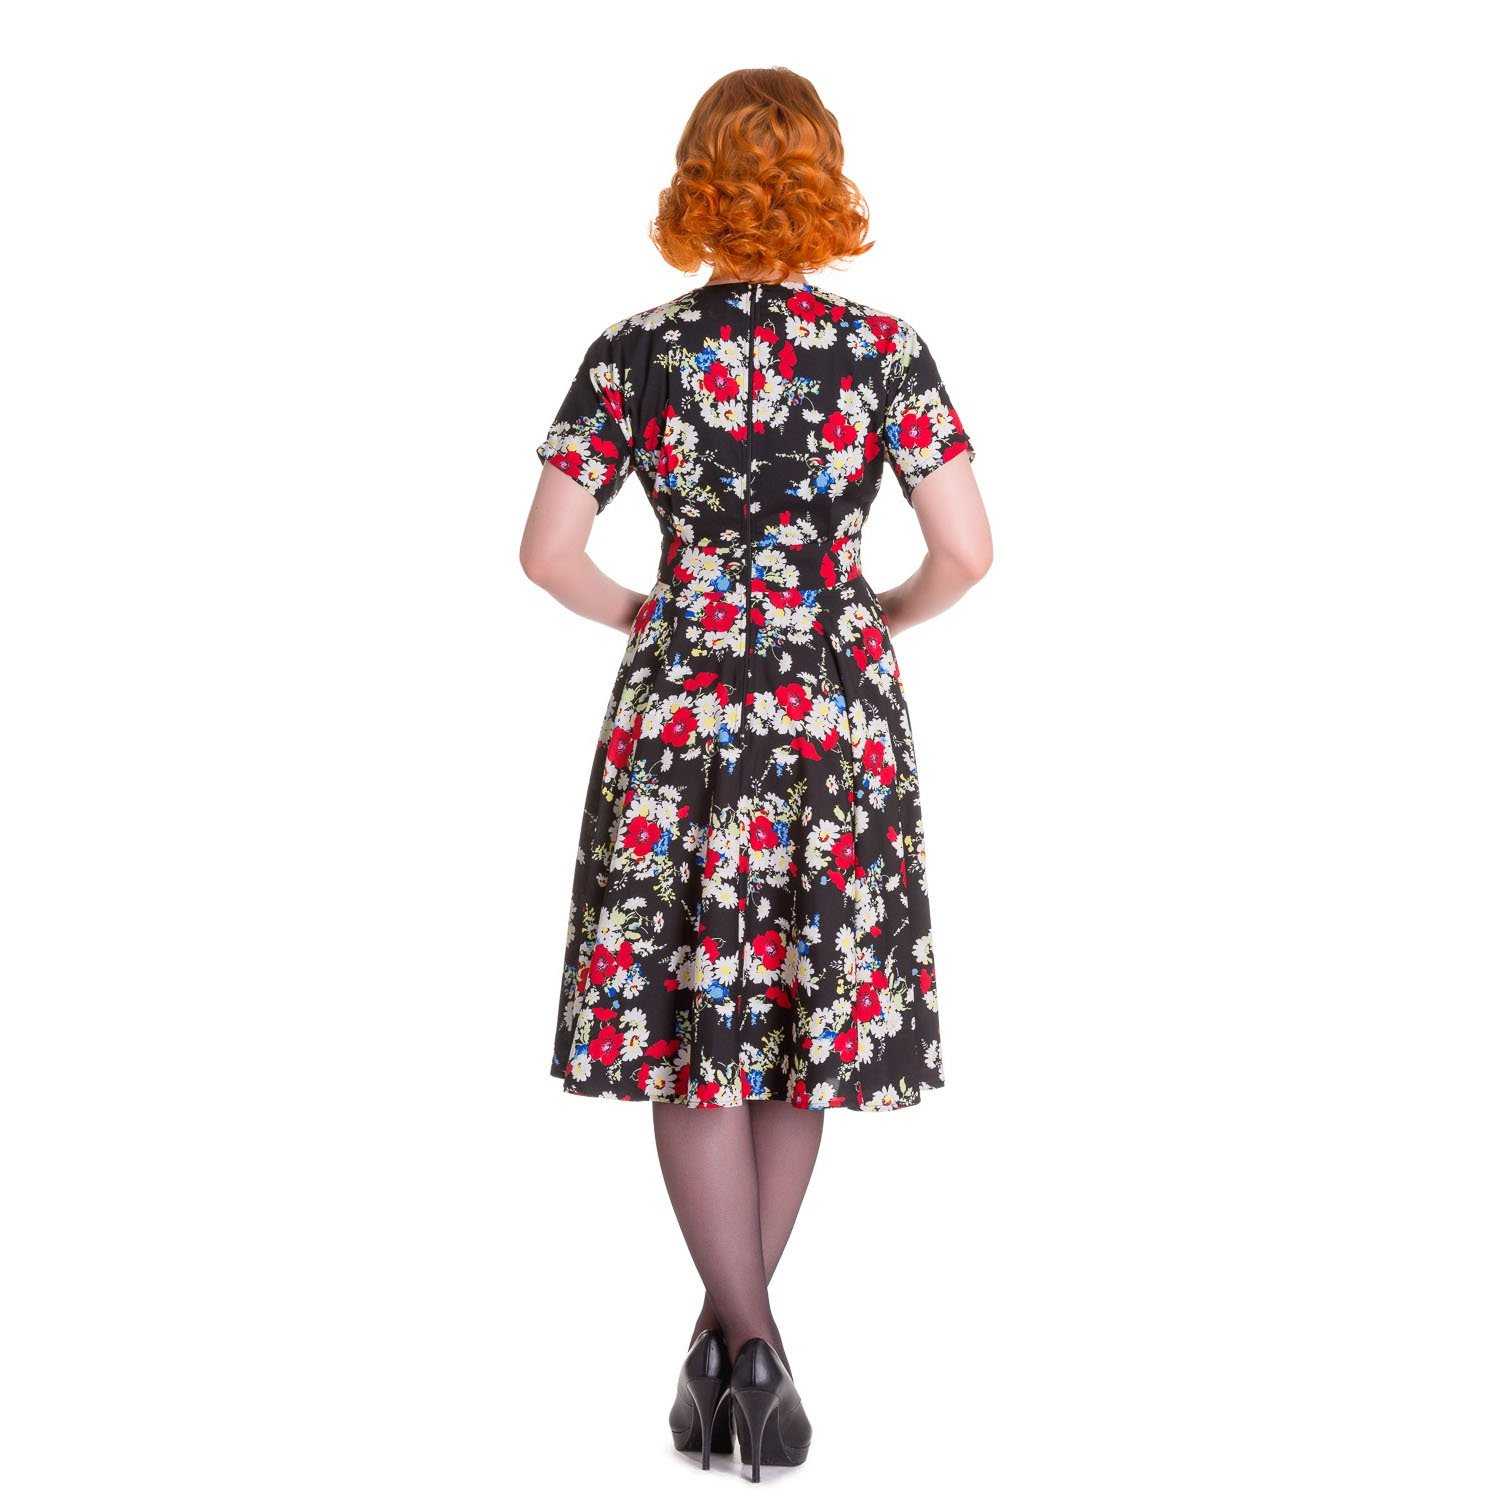 Hell Bunny Heather Black Floral 1940s Wartime WW2 Retro Vintage Victory Dress10 S: Amazon.co.uk: Clothing